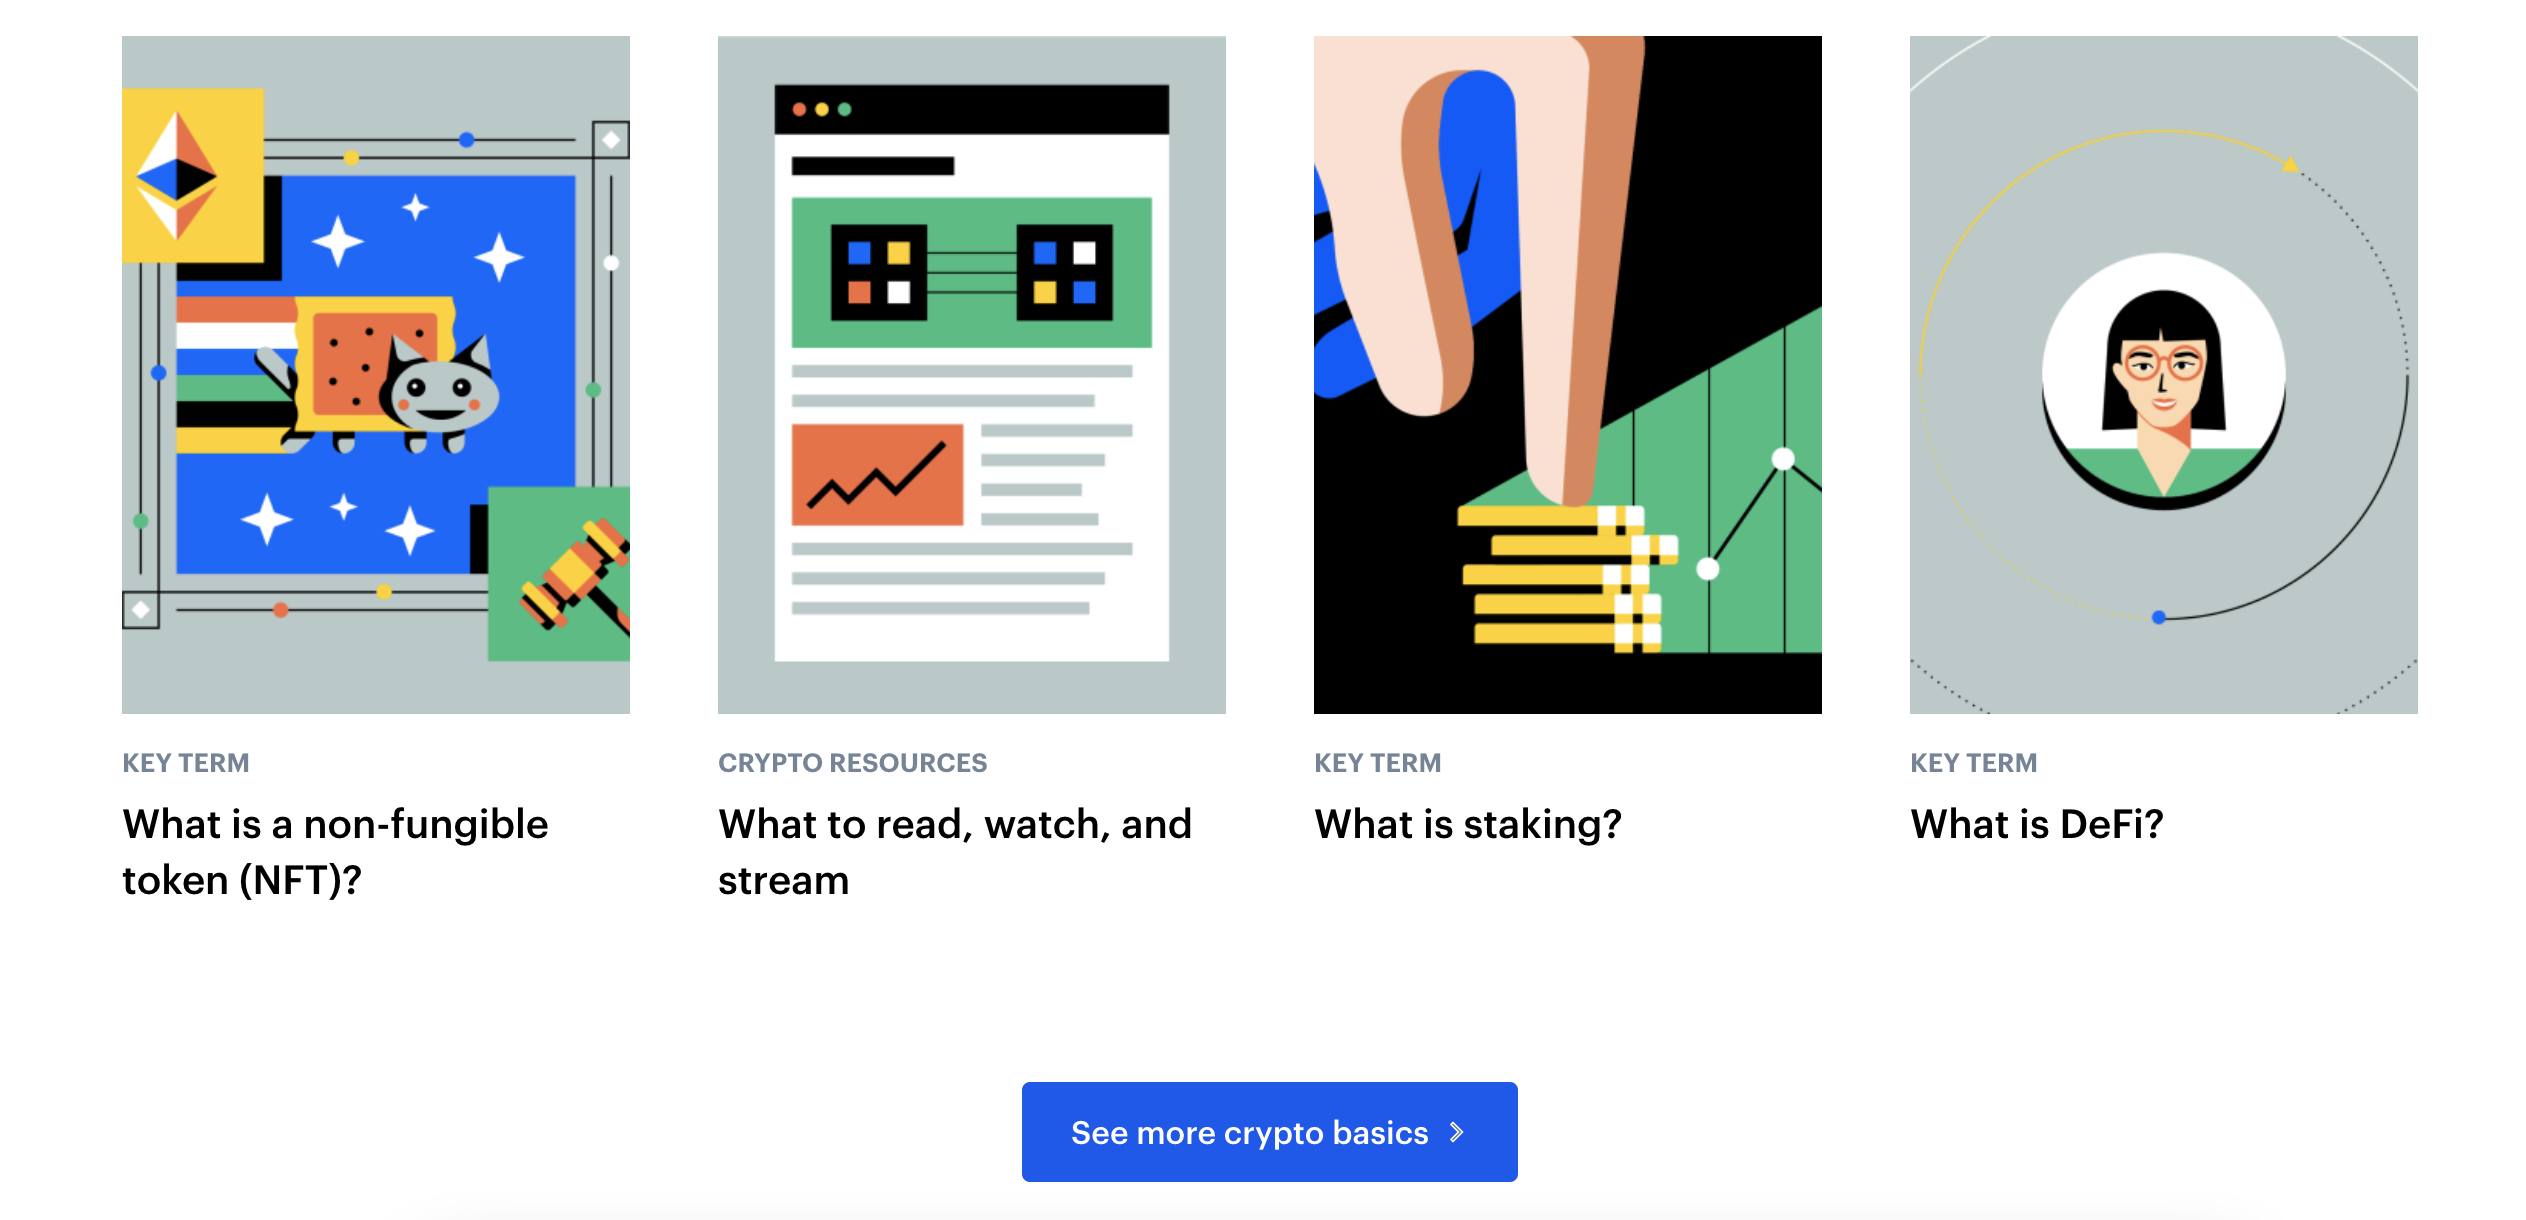 """A screenshot from coinbase.com showing some popular articles explaining the basics of cryptocurrency. Topics include """"What is a non-fungible token?"""", """"What to read, watch, and stream"""", """"What is staking?"""", and """"What is DeFi?"""". Coinbase has lots of resources for the new investor learning to trade crypto."""